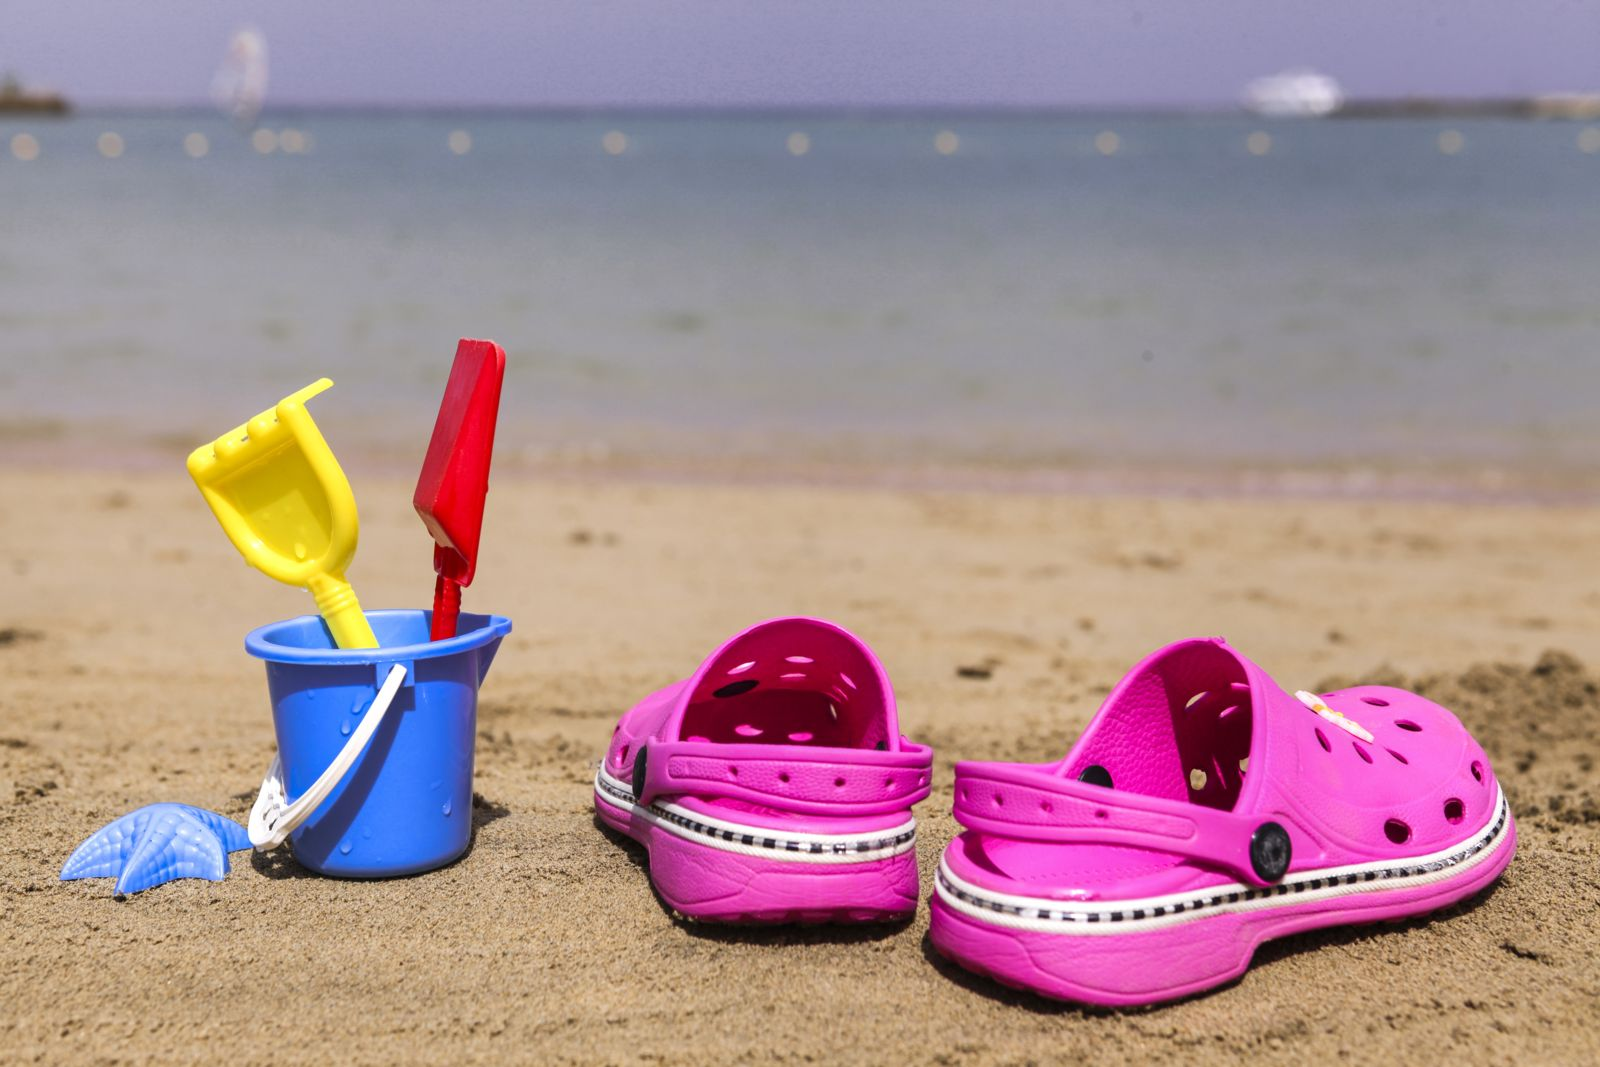 Wearing crocs to school? NOT a good idea!! But by the beach? Nothing could be better.